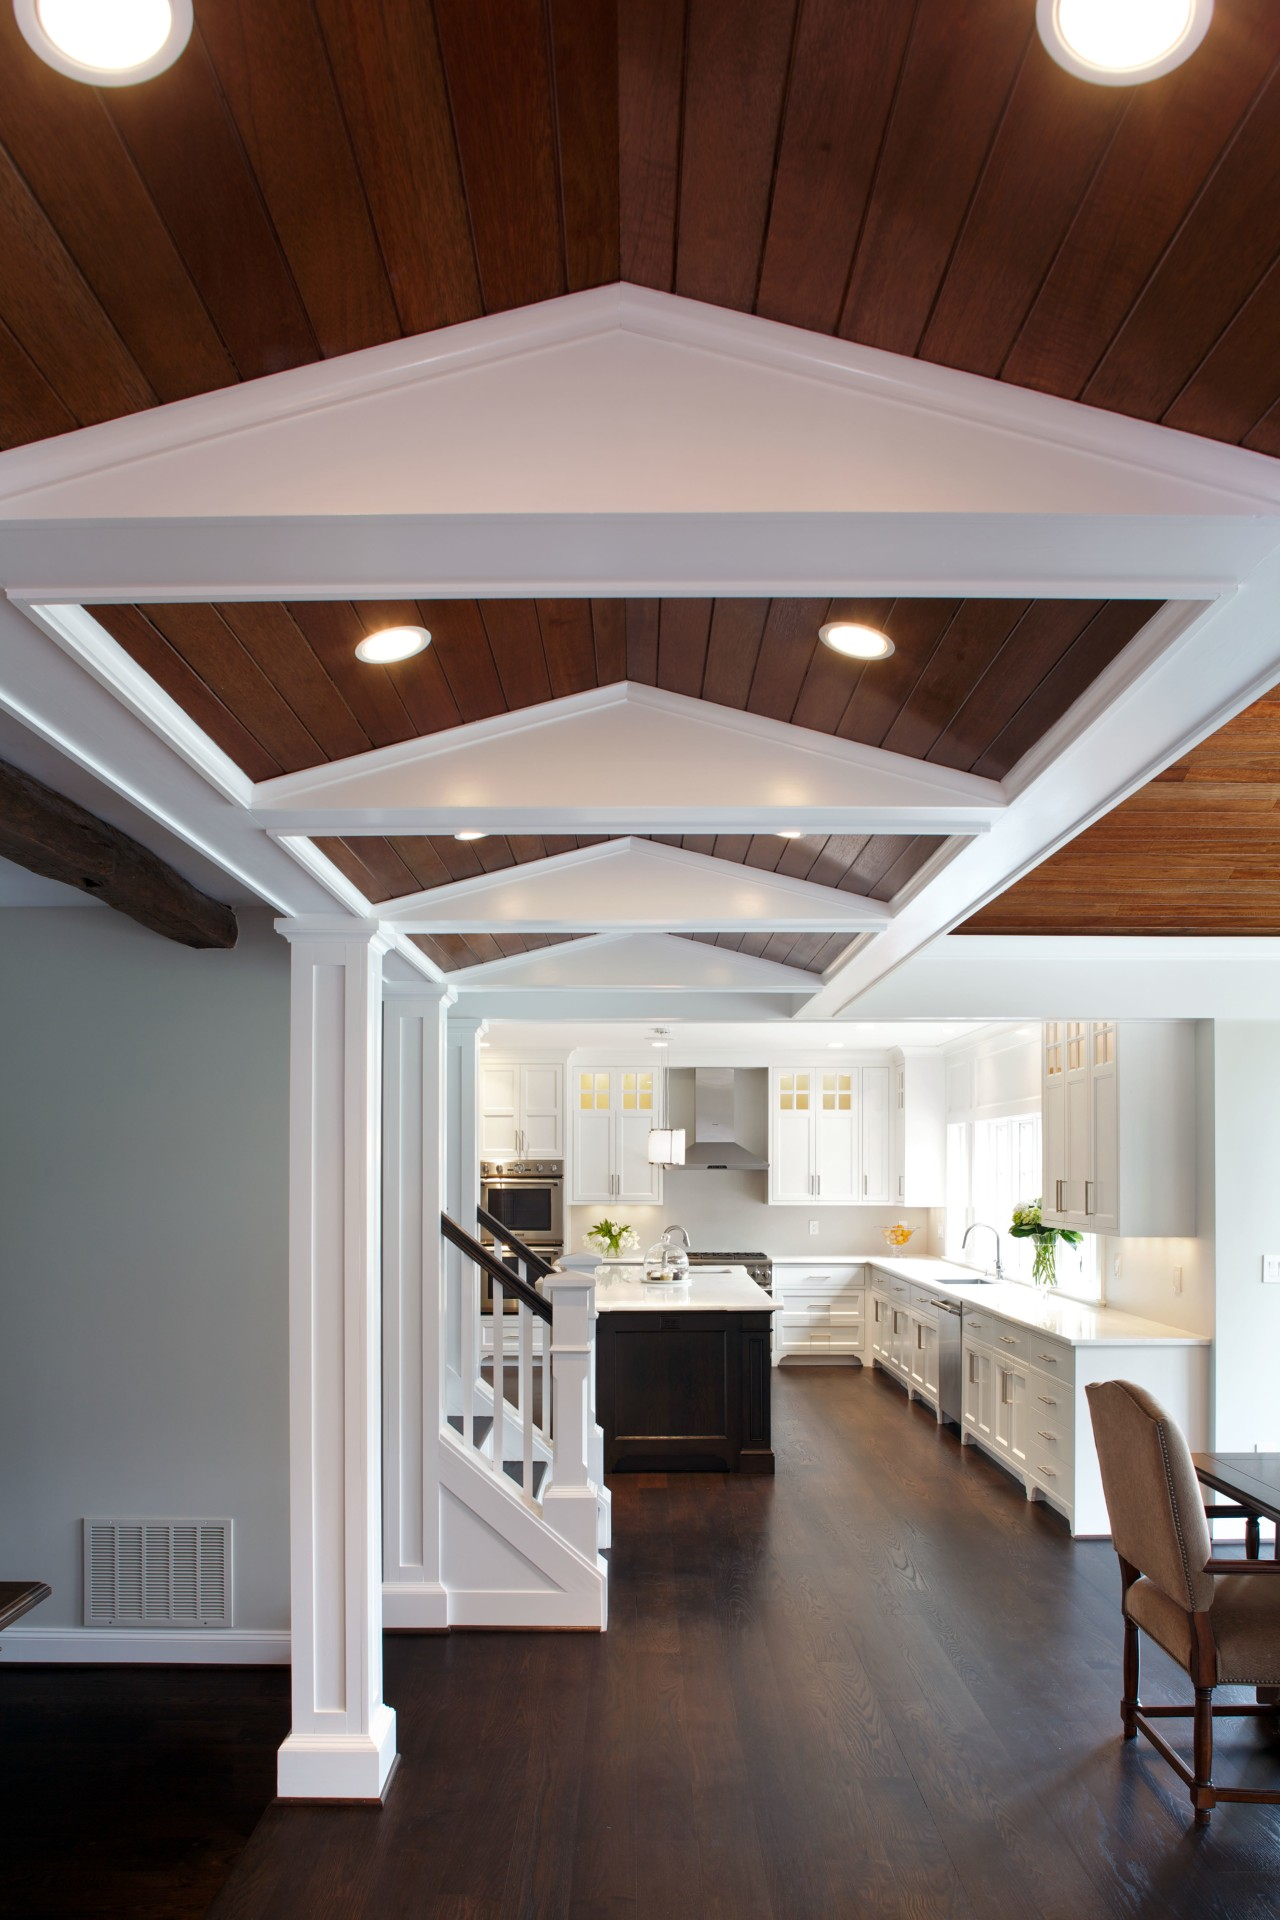 A new raked ceiling element helps to define architecture, ceiling, daylighting, floor, home, house, interior design, gray